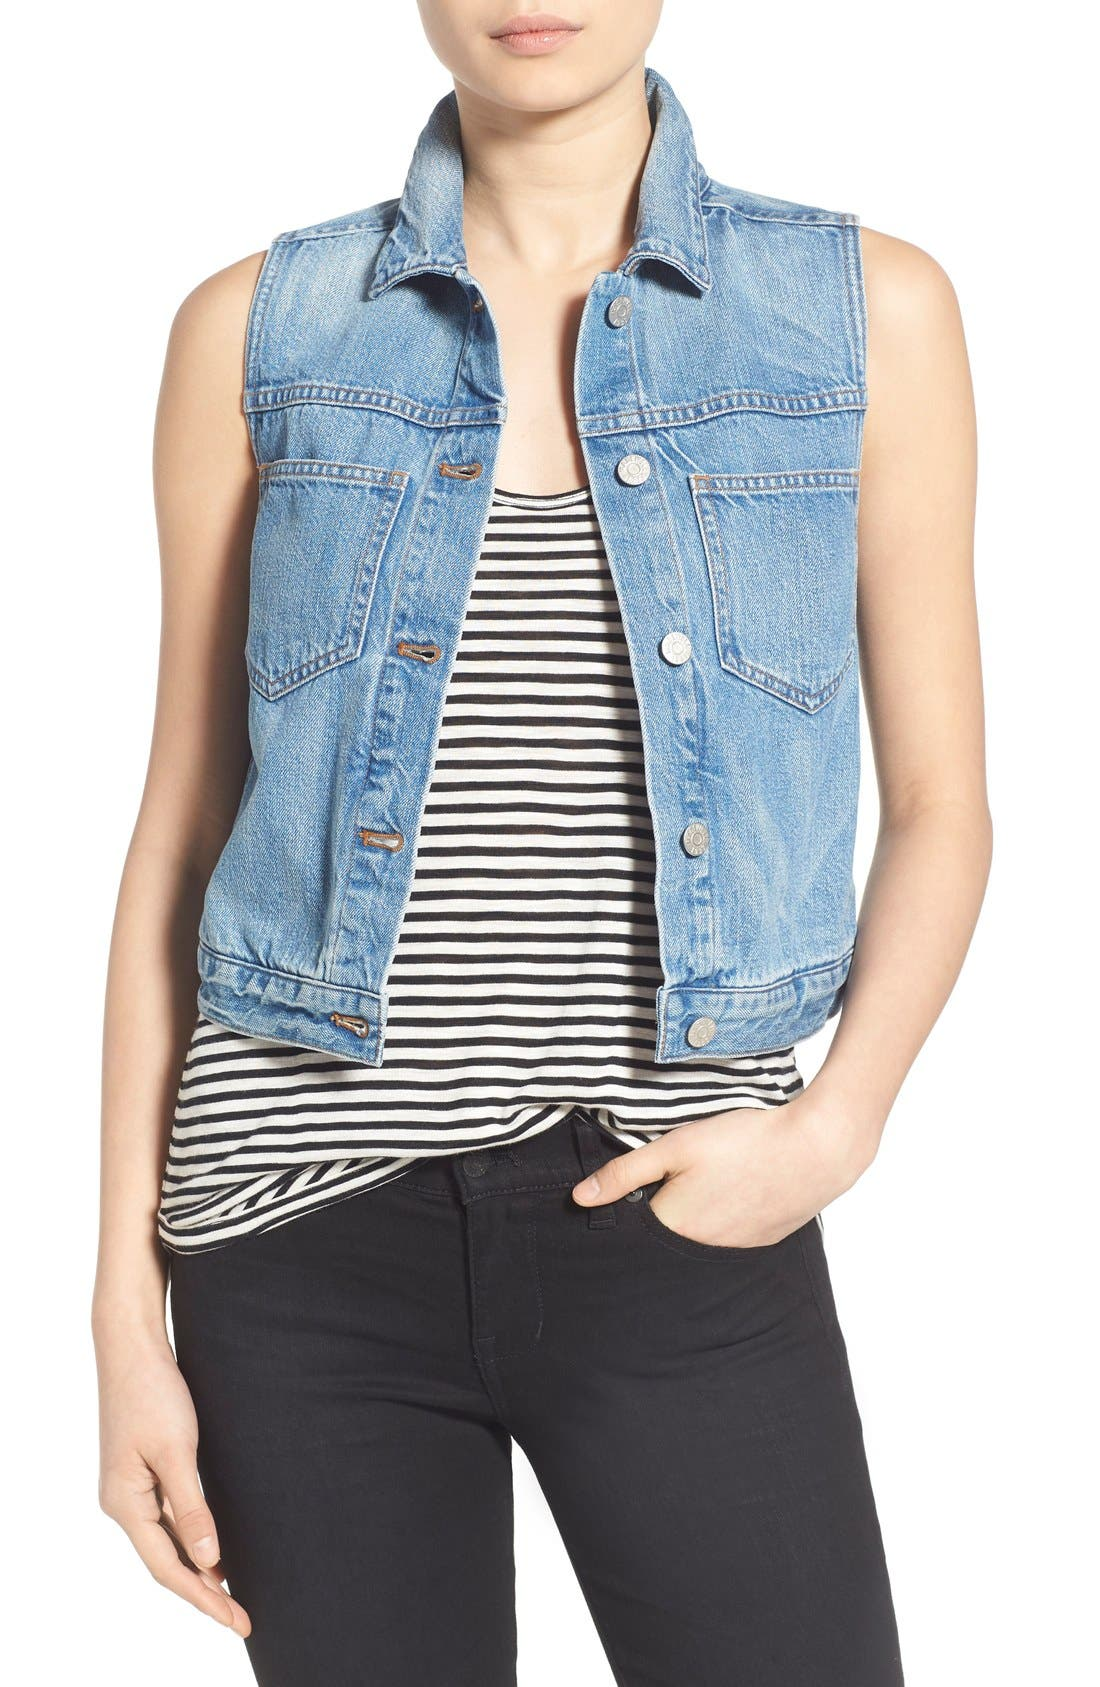 MADEWELL Chest Pocket Denim Vest, Main, color, 400